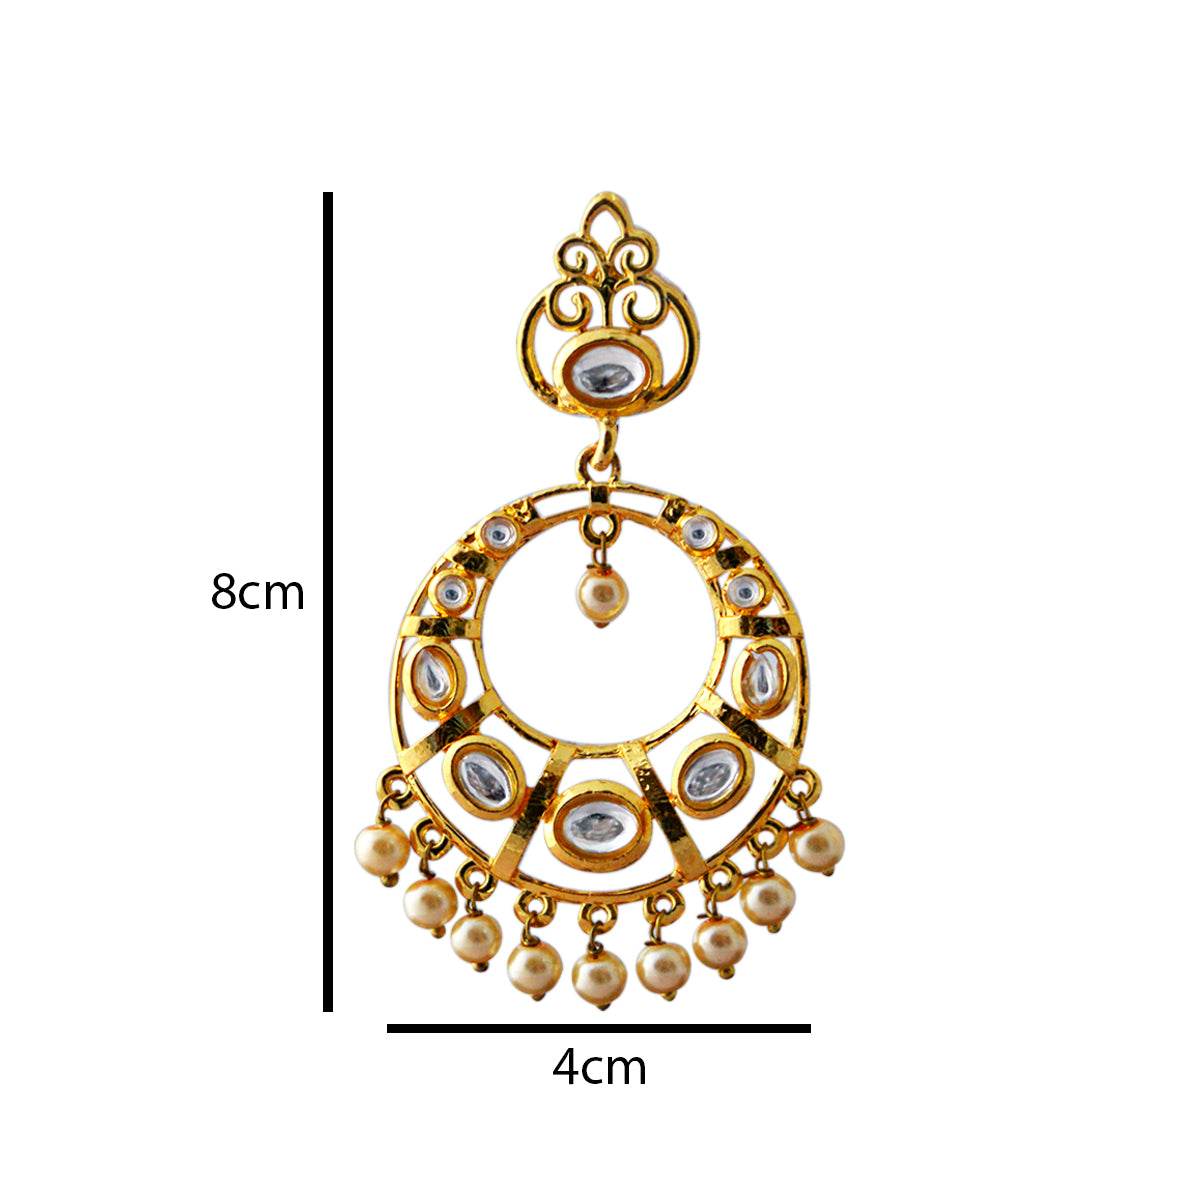 Gold Plated With Kundan Stone Dangler Earrings-MK JEWELLERS1-Earring